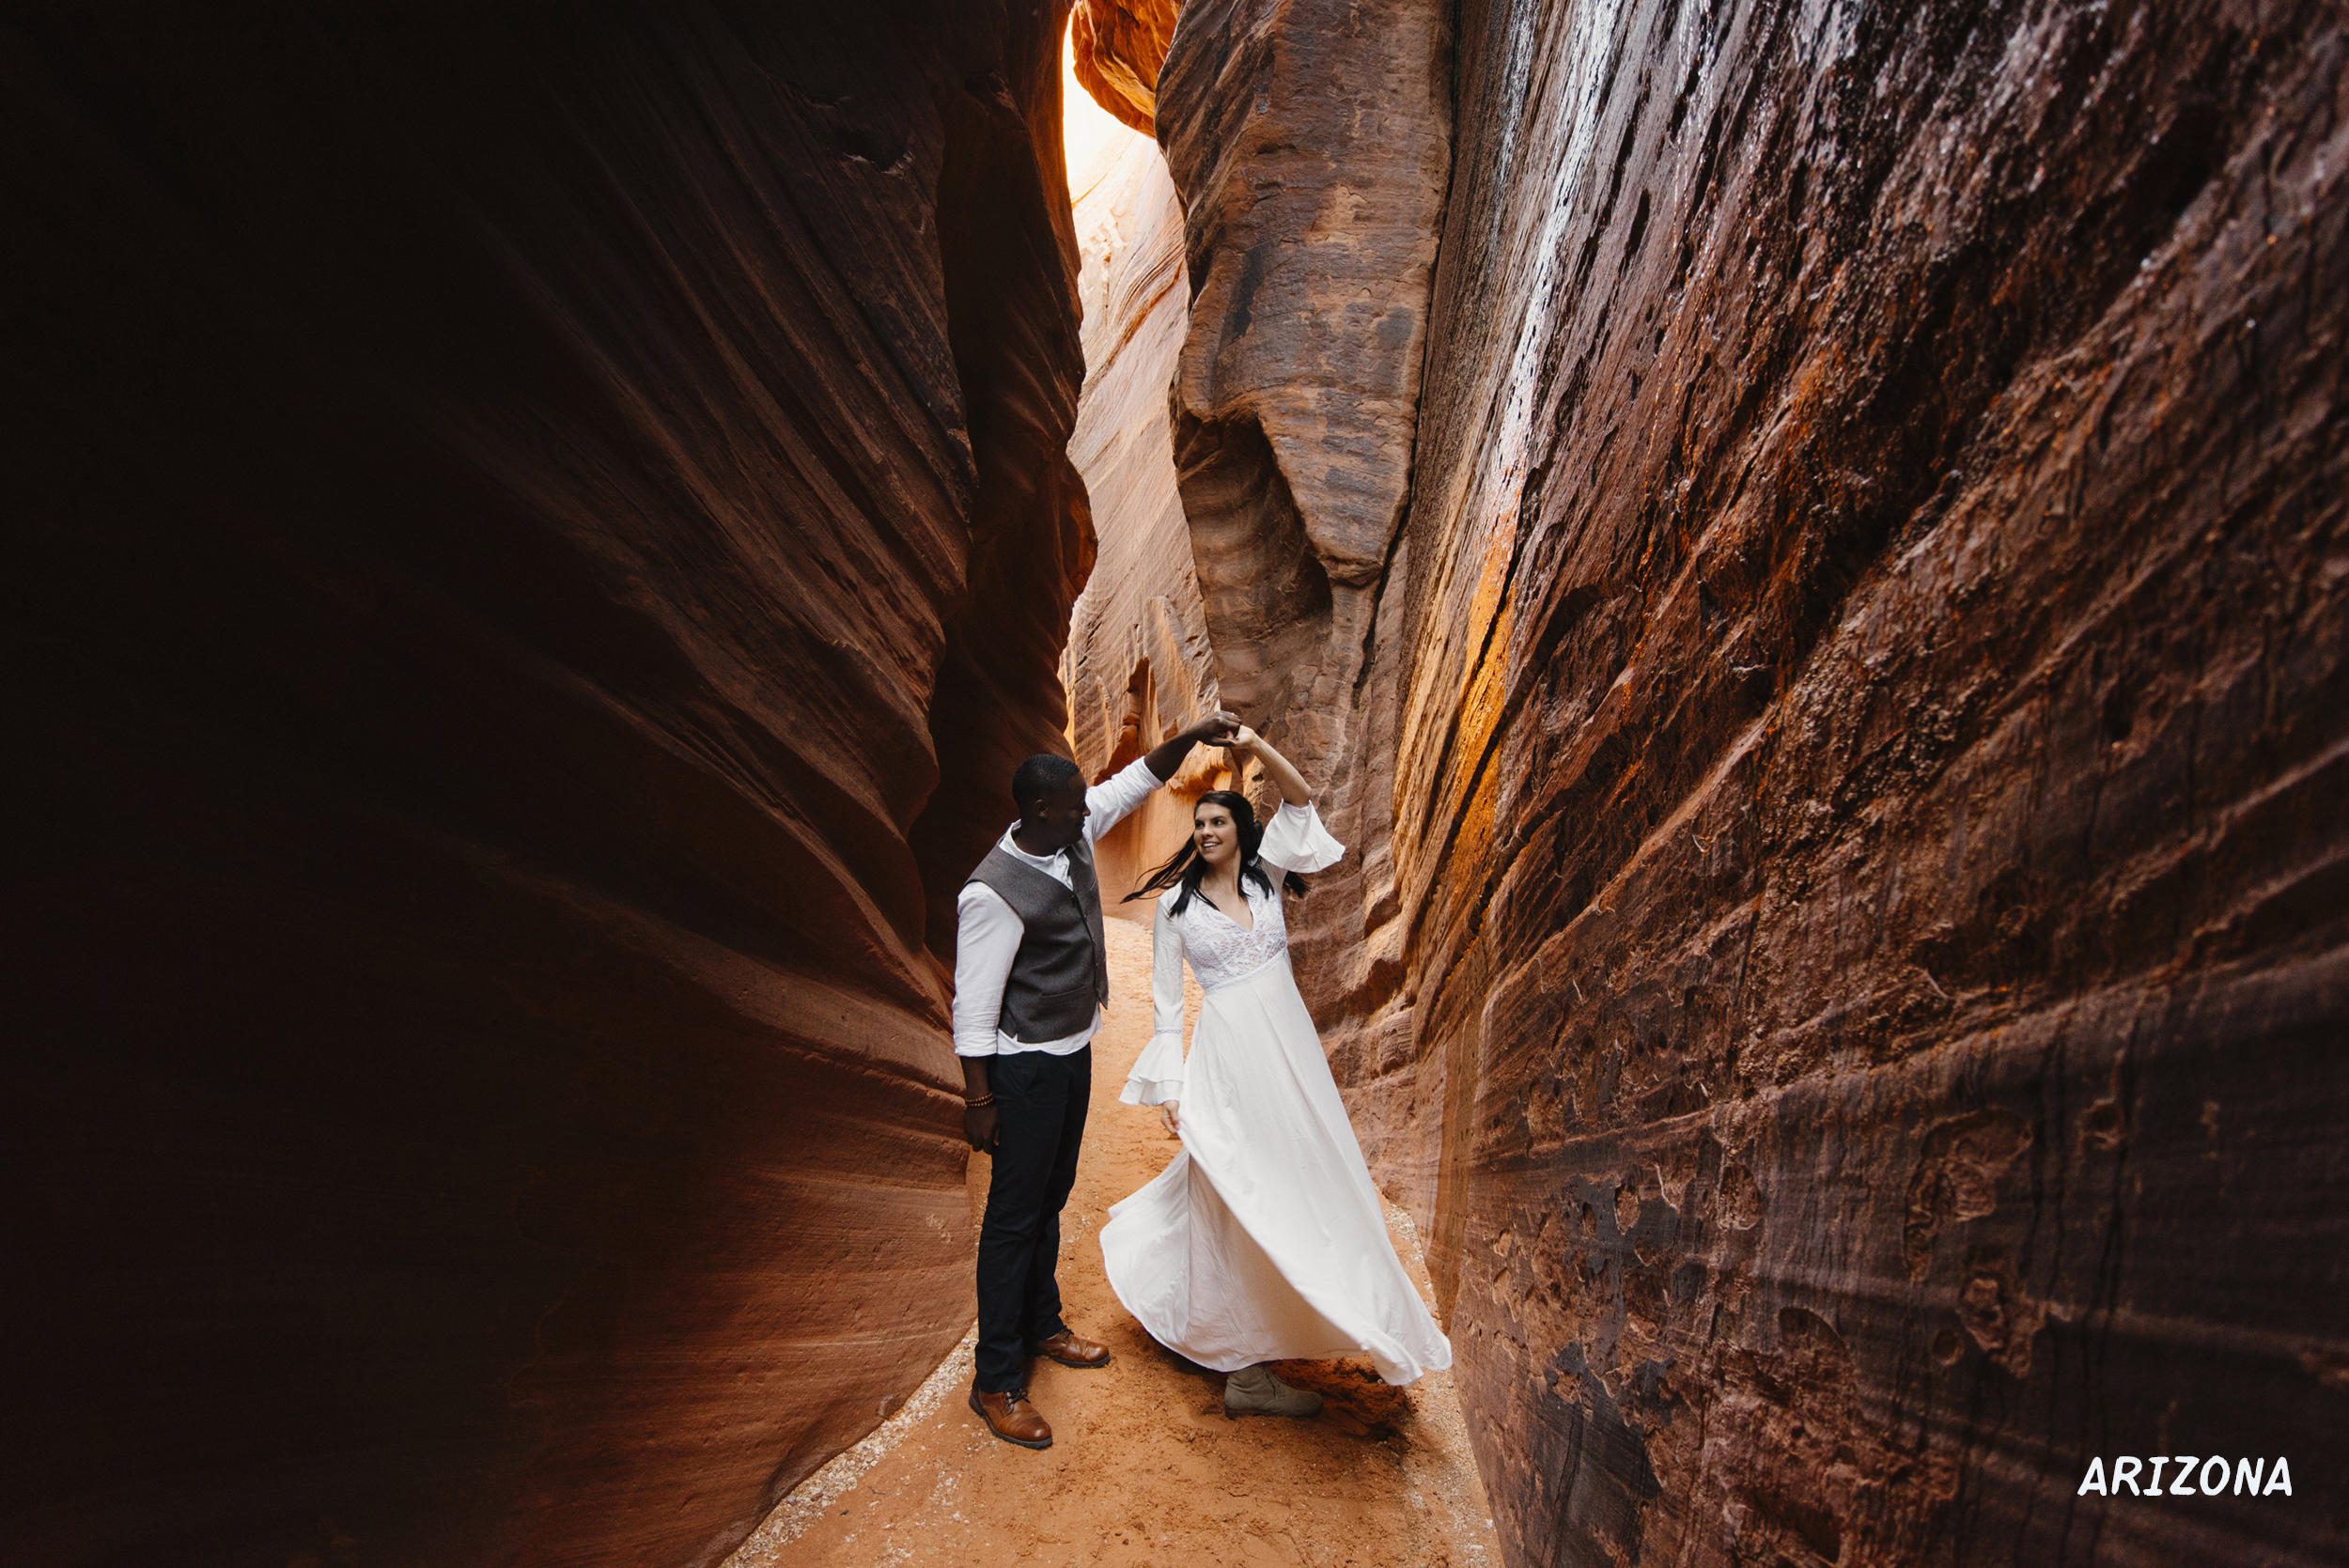 Canyon-Arizona-Adventure-Elopement-Photographer.jpg